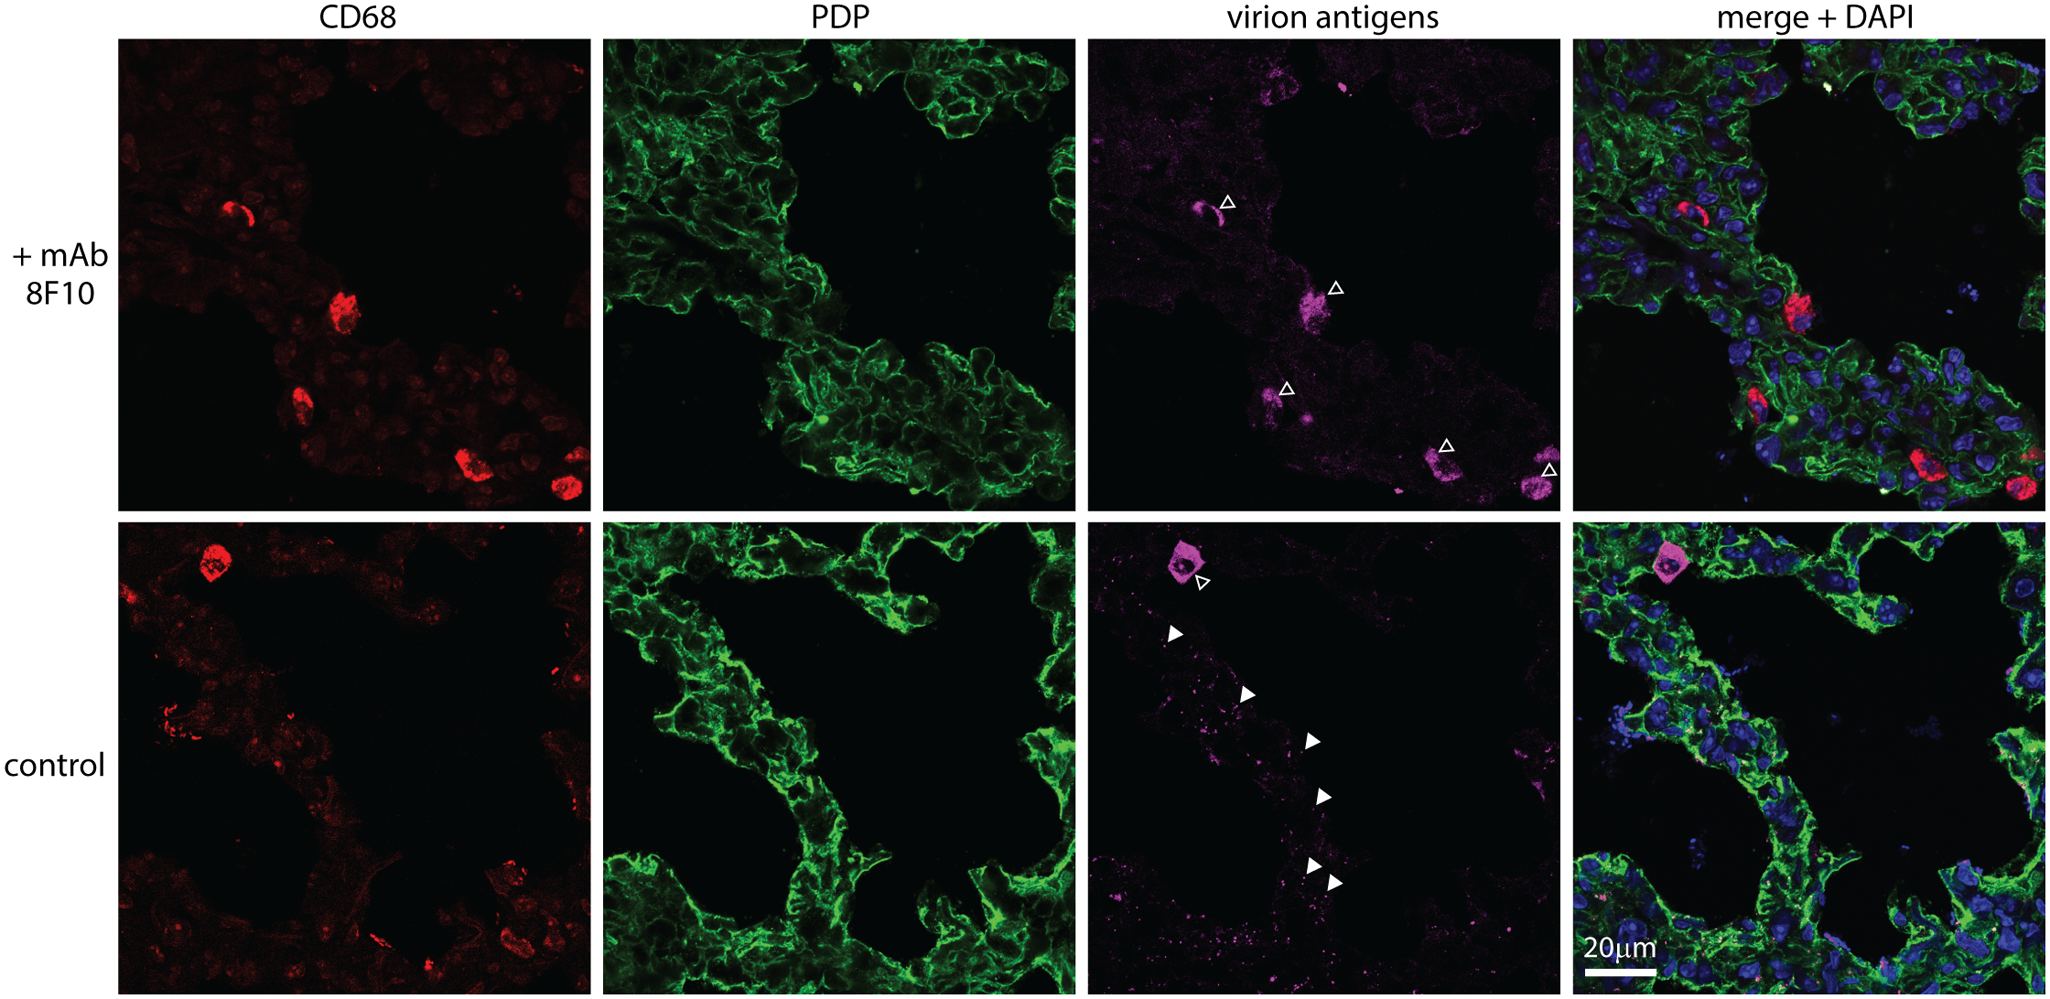 An antibody-mediated block to heparan binding inhibits MuHV-4 interaction with alveolar epithelial cells but not macrophages.